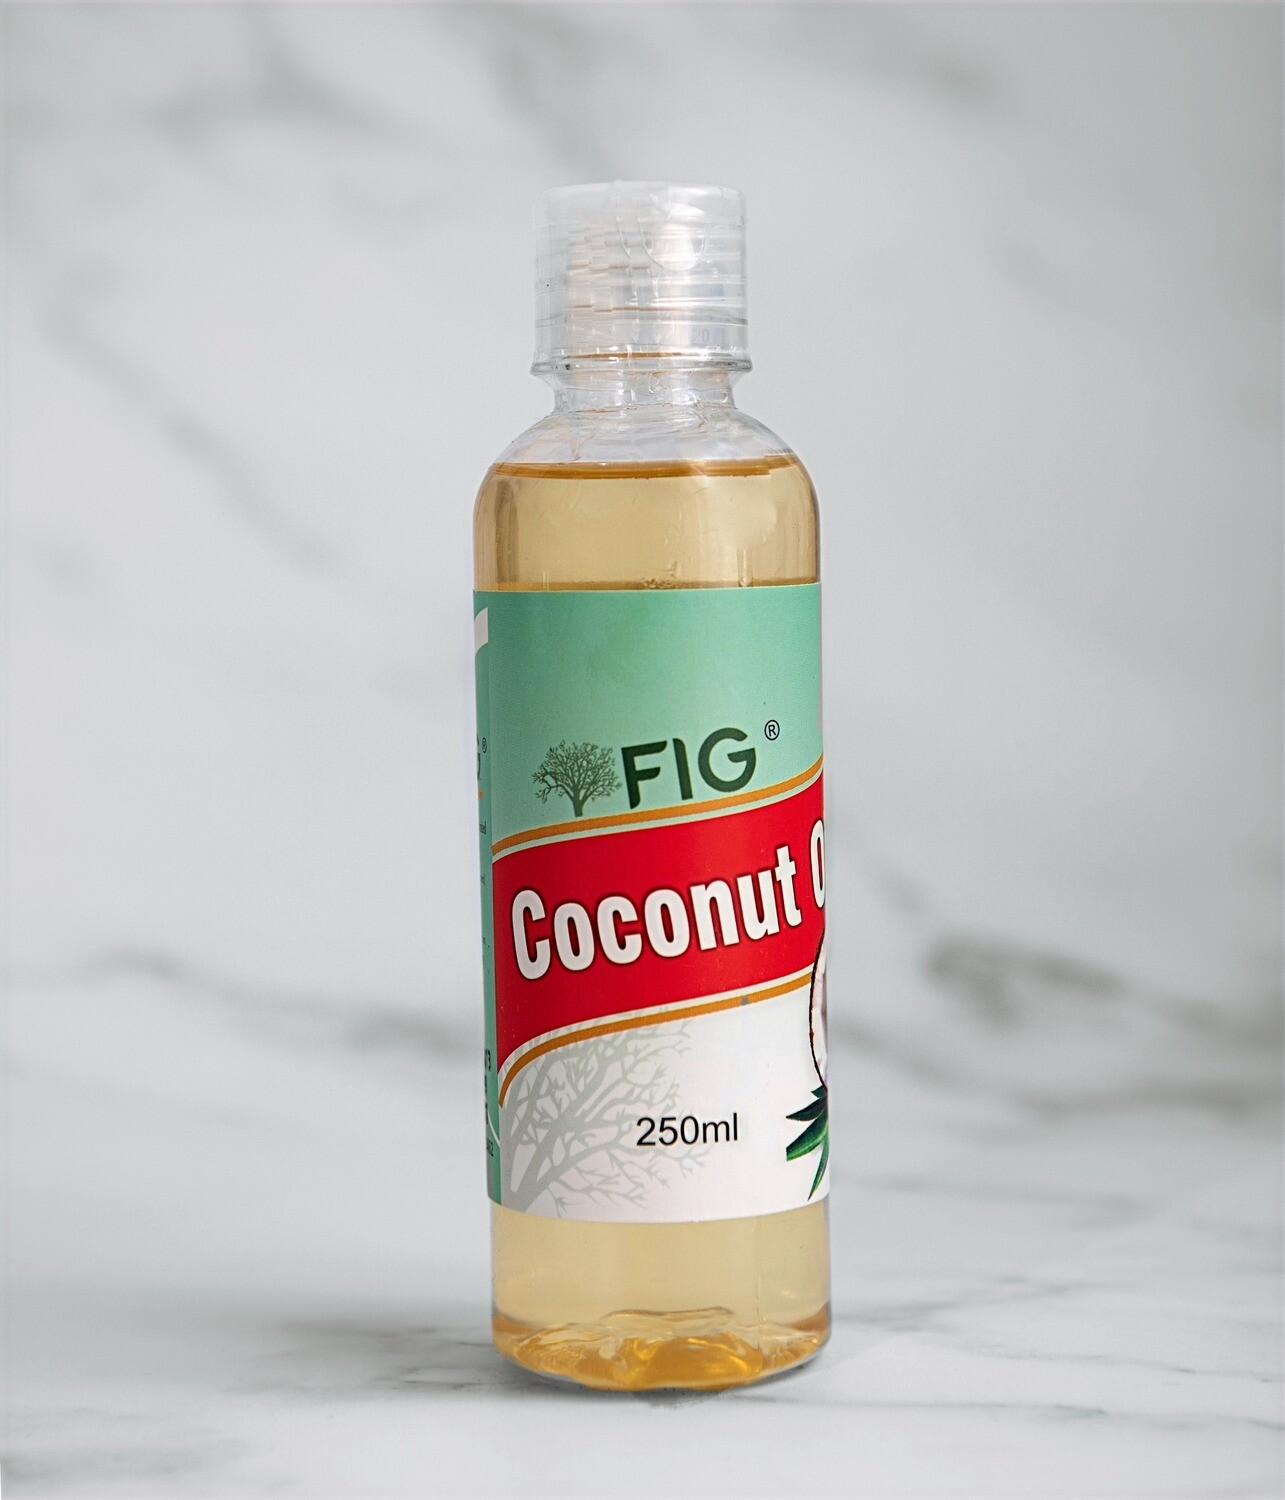 FIGTREE COCONUT OIL (250ml)